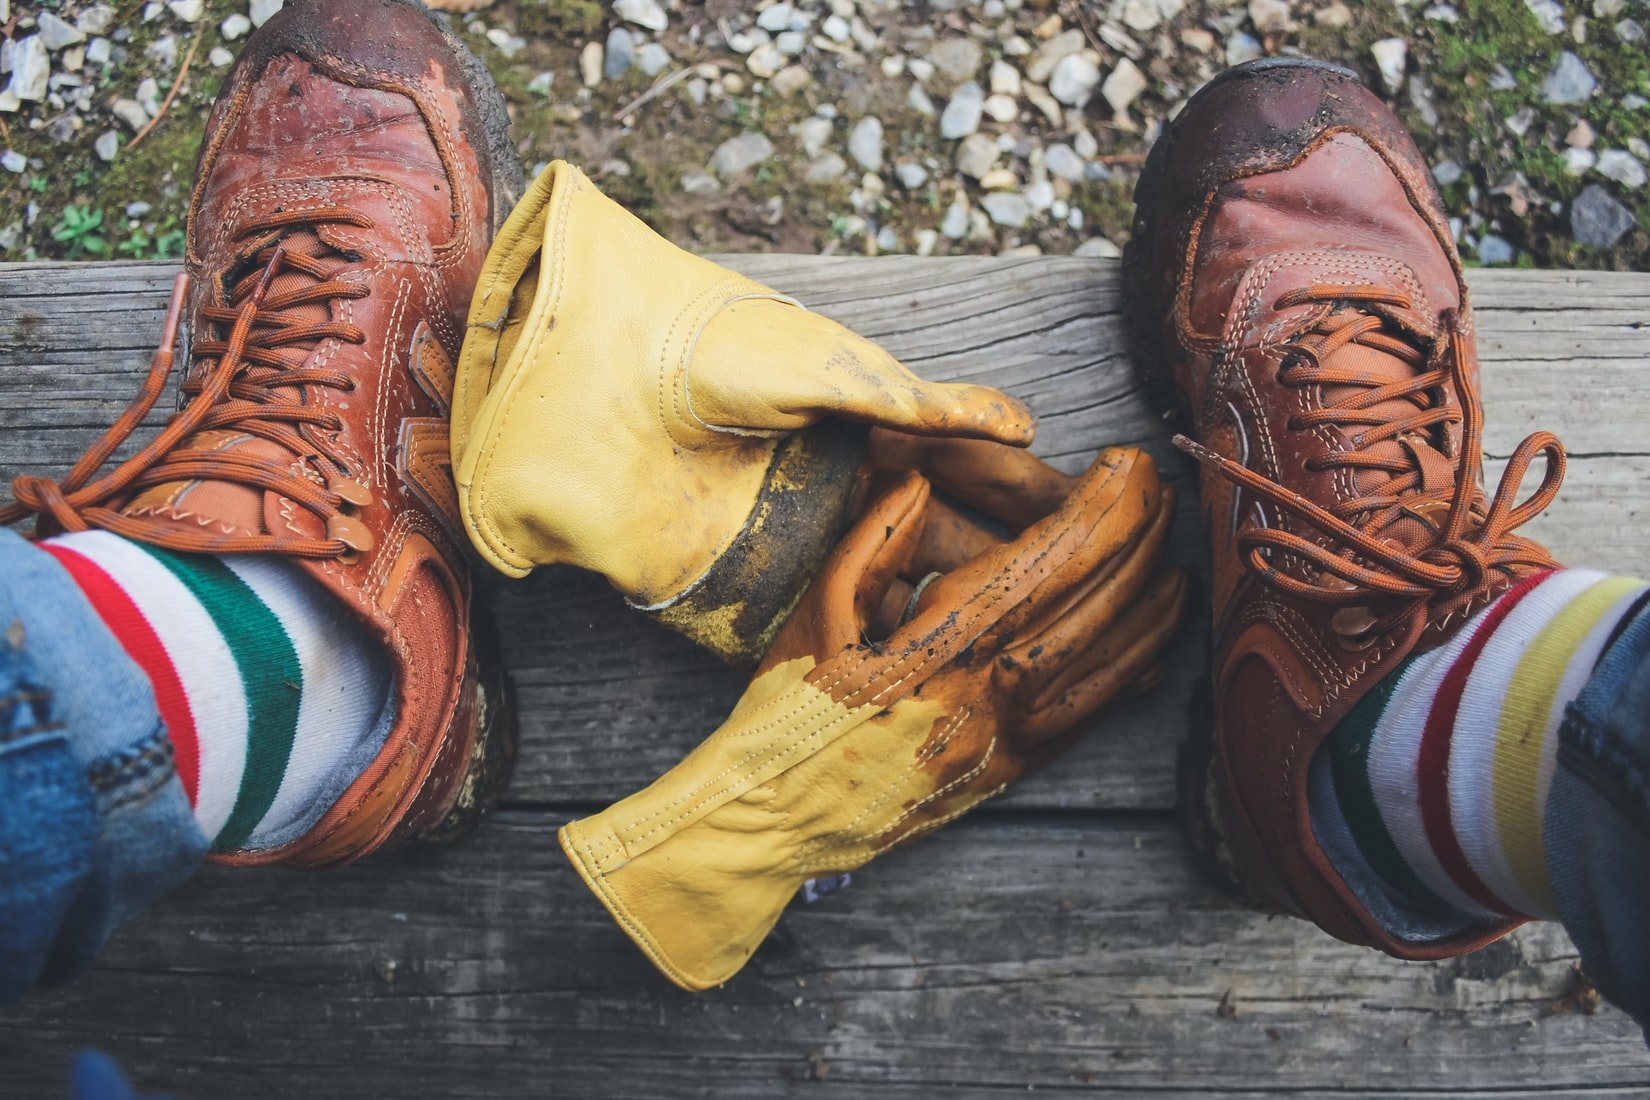 Pair of yellow gloves on ground in-between man's brown shoes